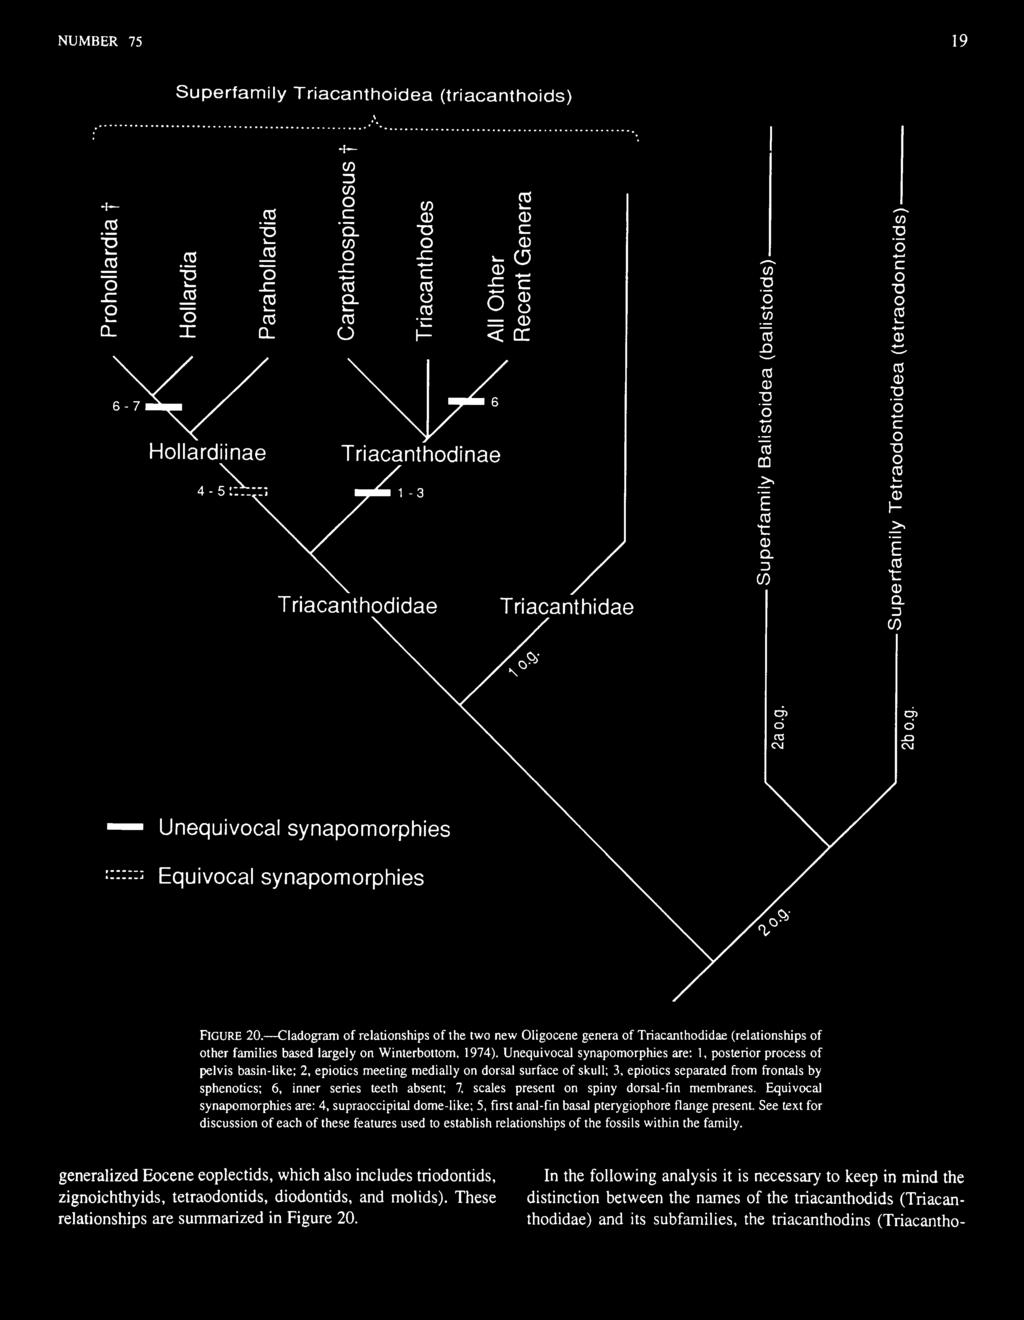 Cladogram of relationships of the two new Oligocene genera of Triacanthodidae (relationships of other families based largely on Winterbottom, 1974).